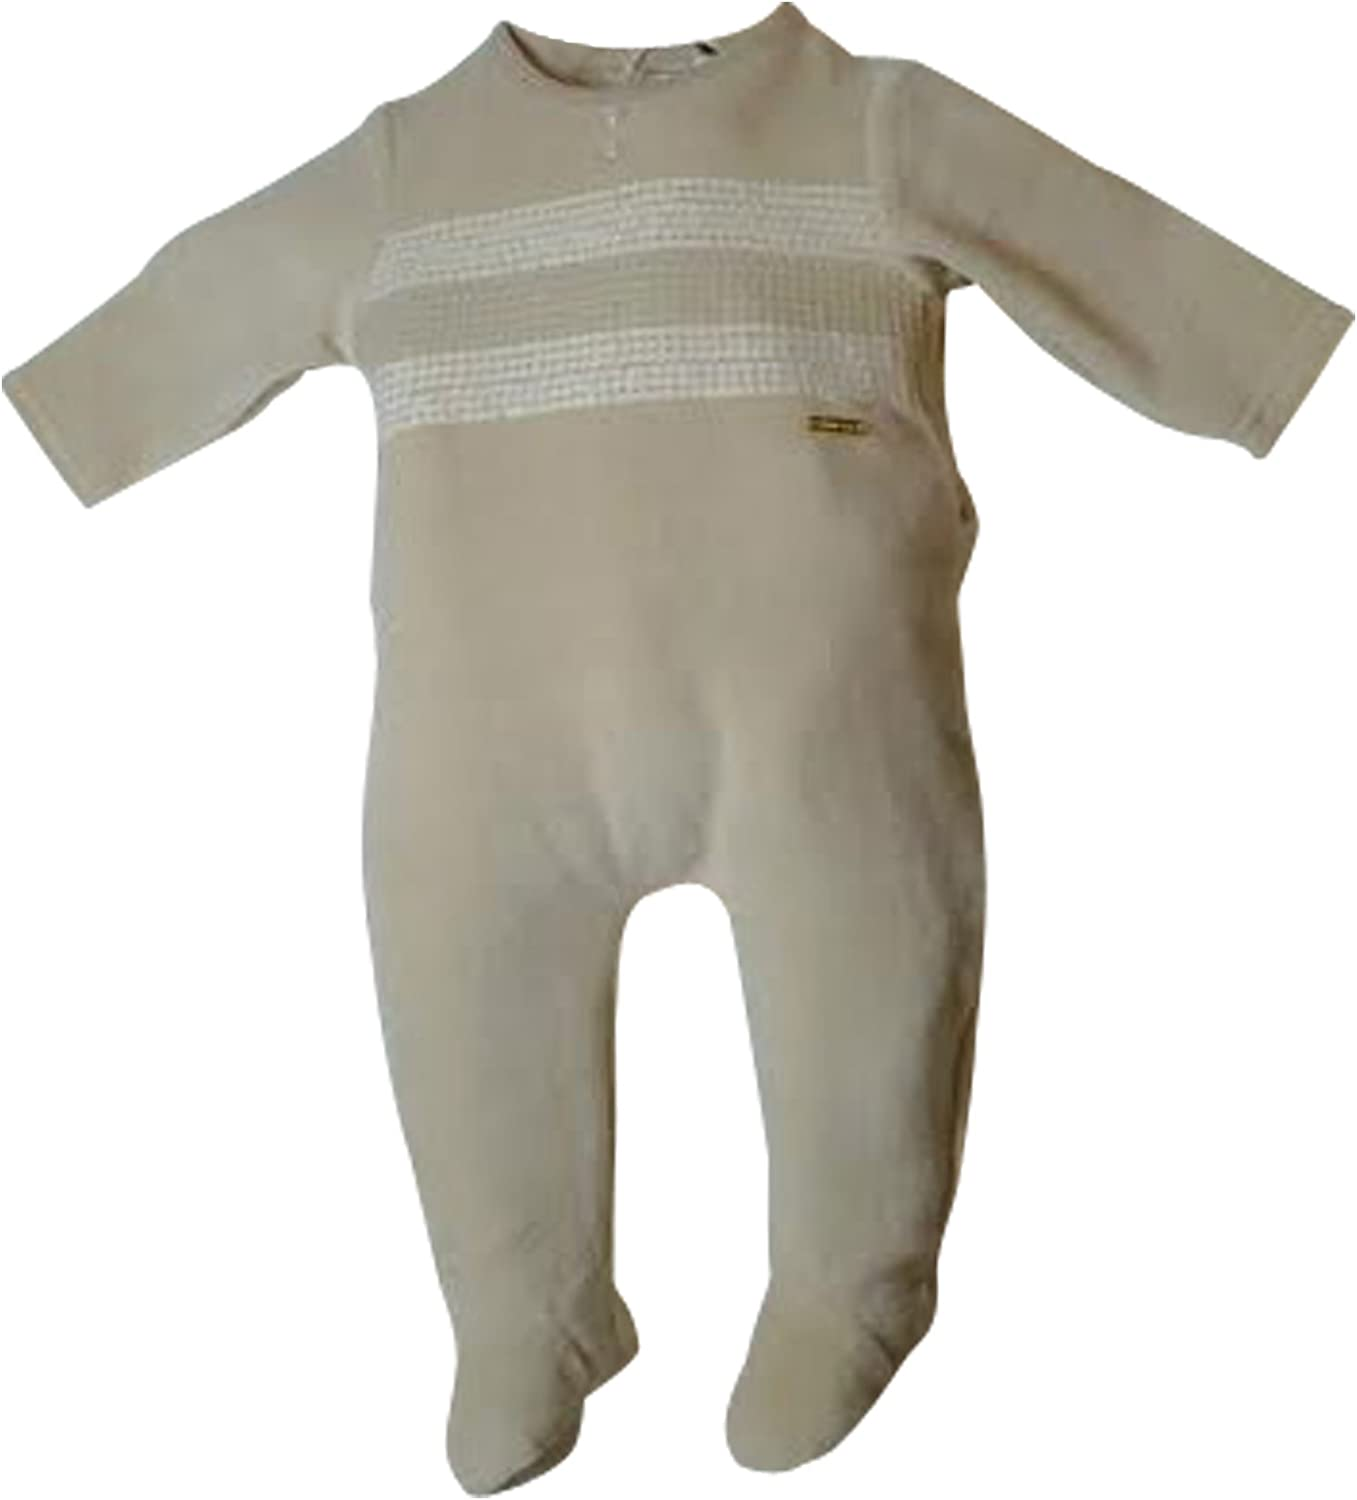 Newborn Footie Clothes Sequence Velour 1 pc Footed Sleeper Pajamas Romper Camel